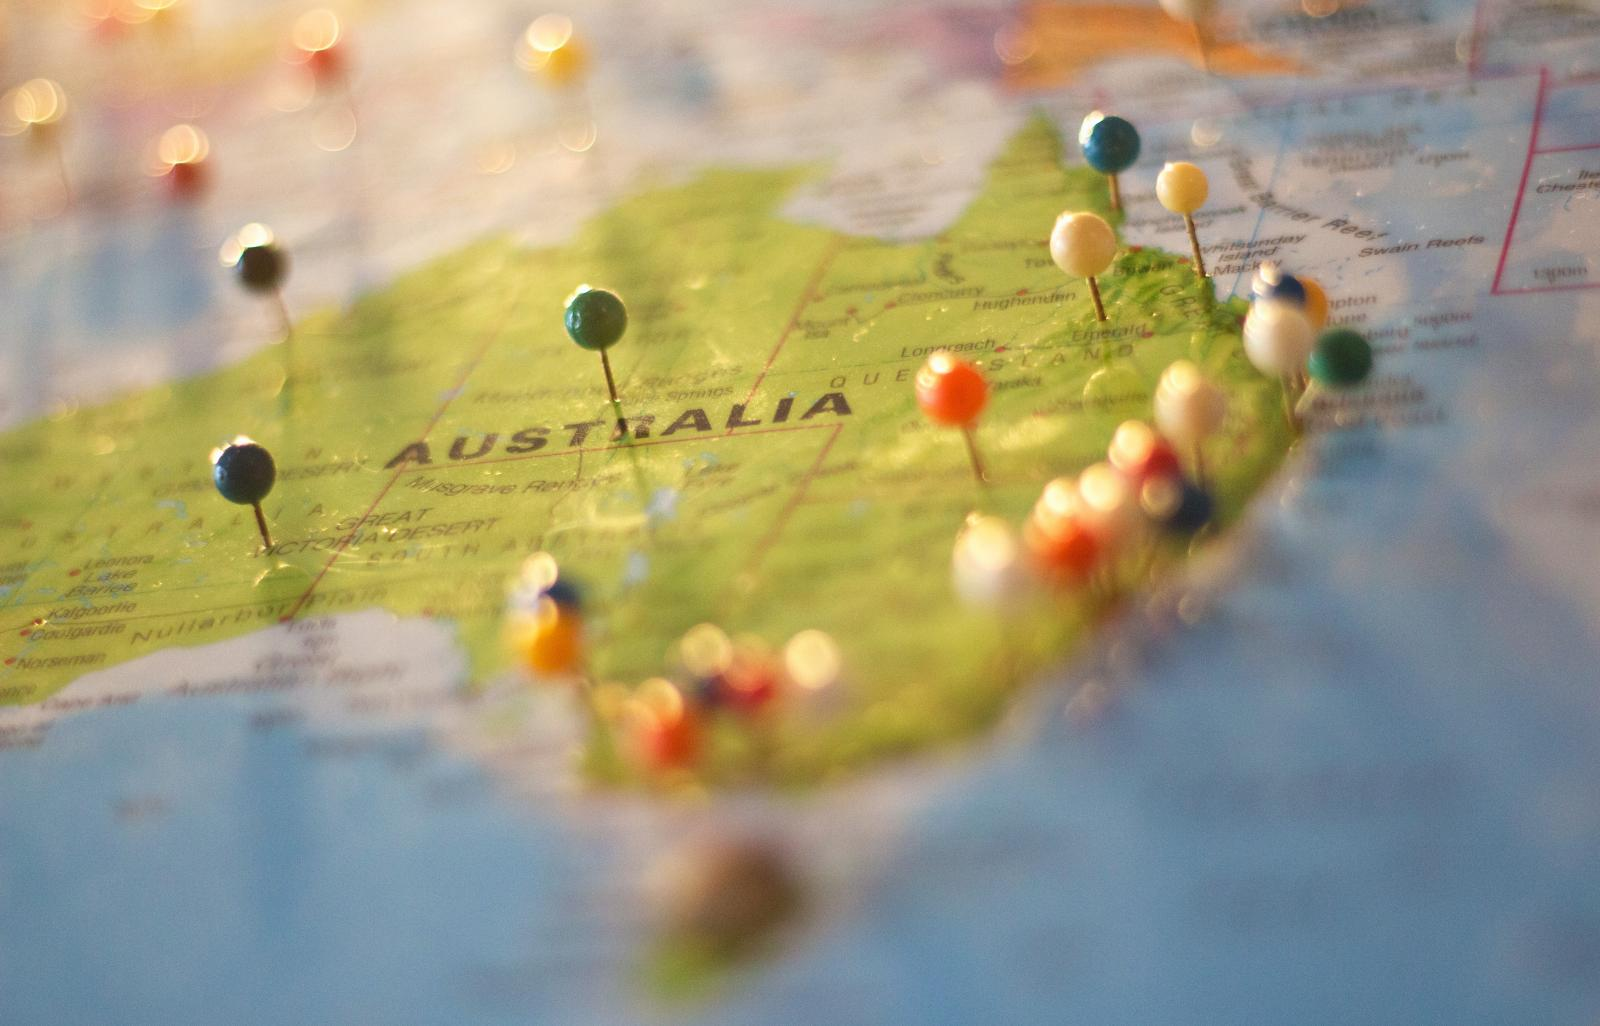 Map of Australia. Photo credit: Pexels